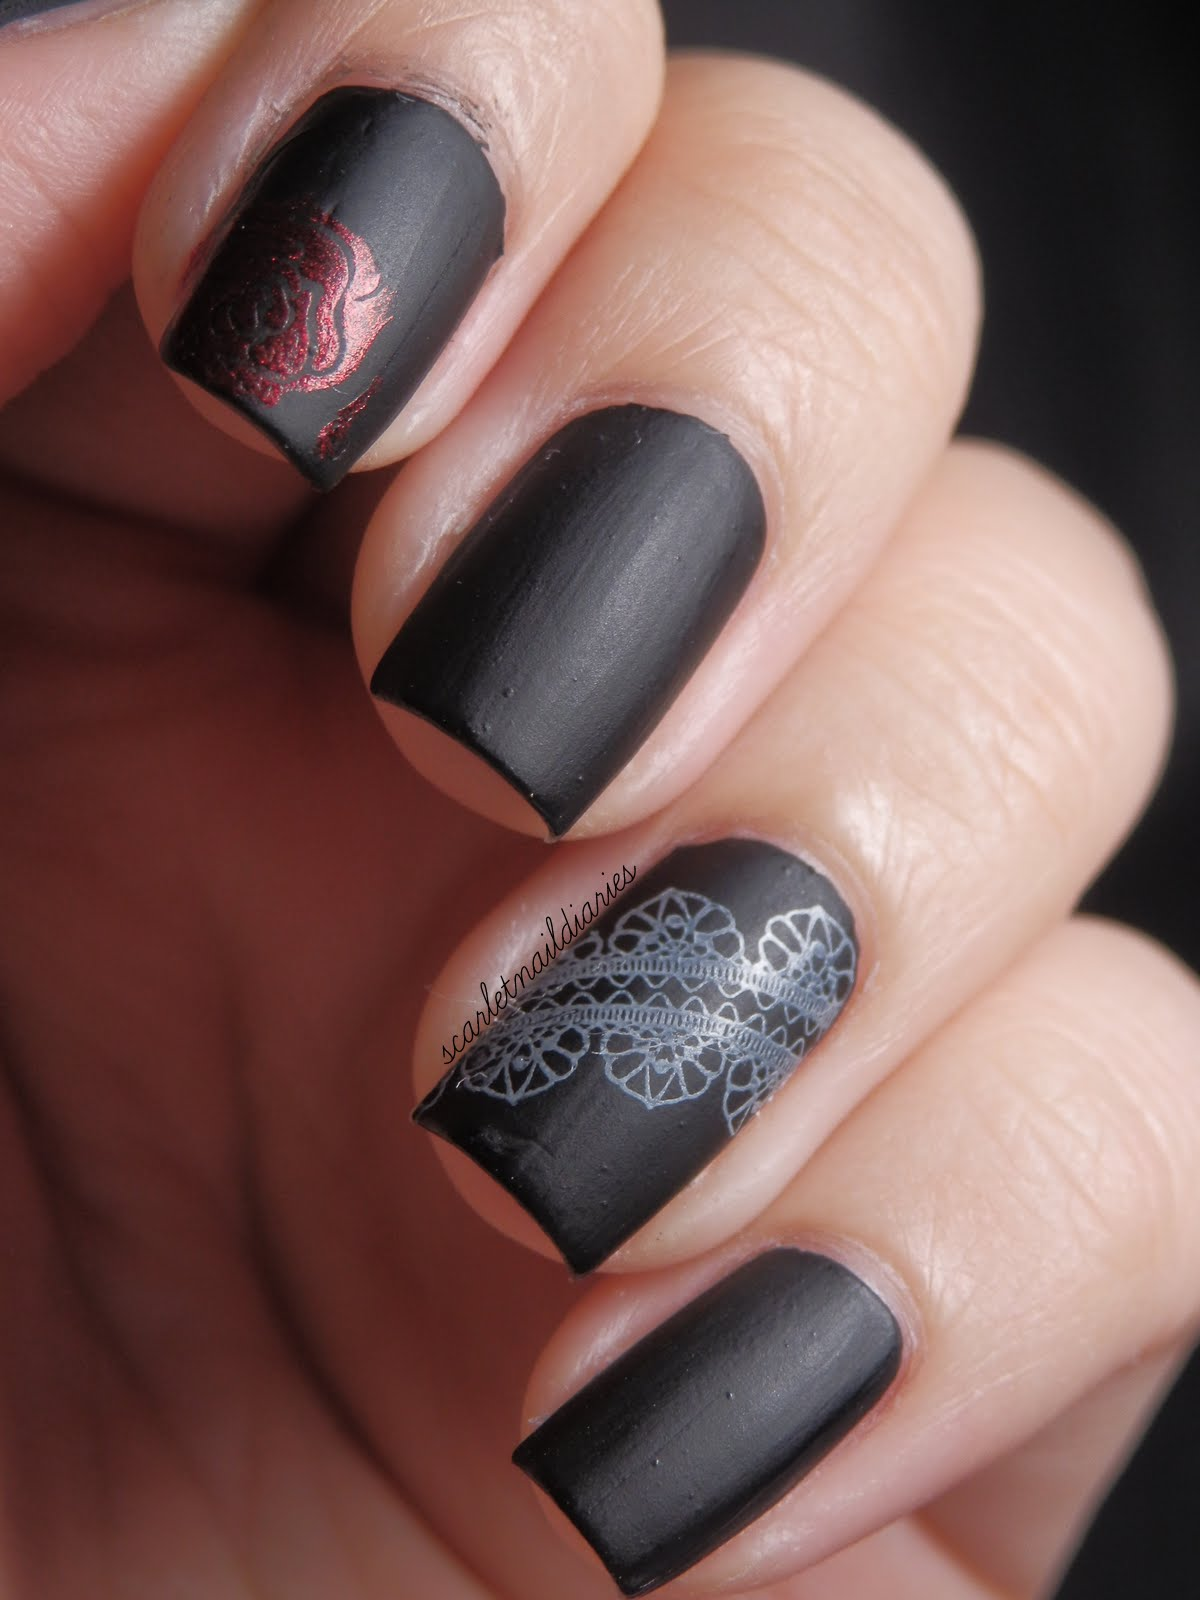 The Scarlet Nail Diaries: Gothic Nails